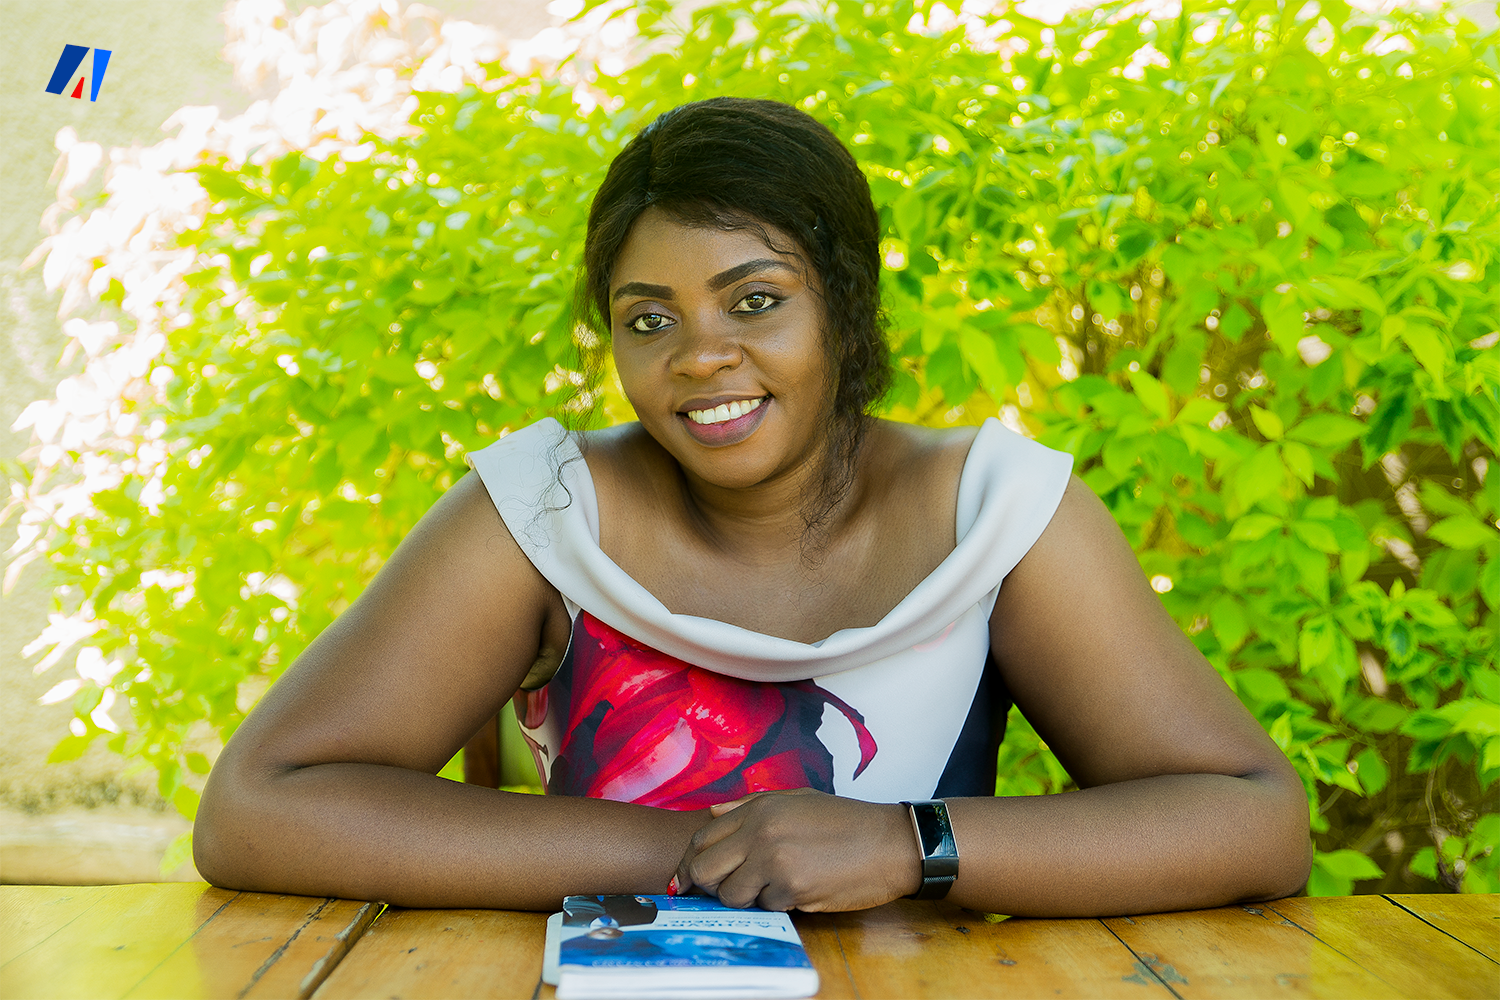 Meet Marie Chantal NZEYIMANA, founder of Rise for Africa in Norway